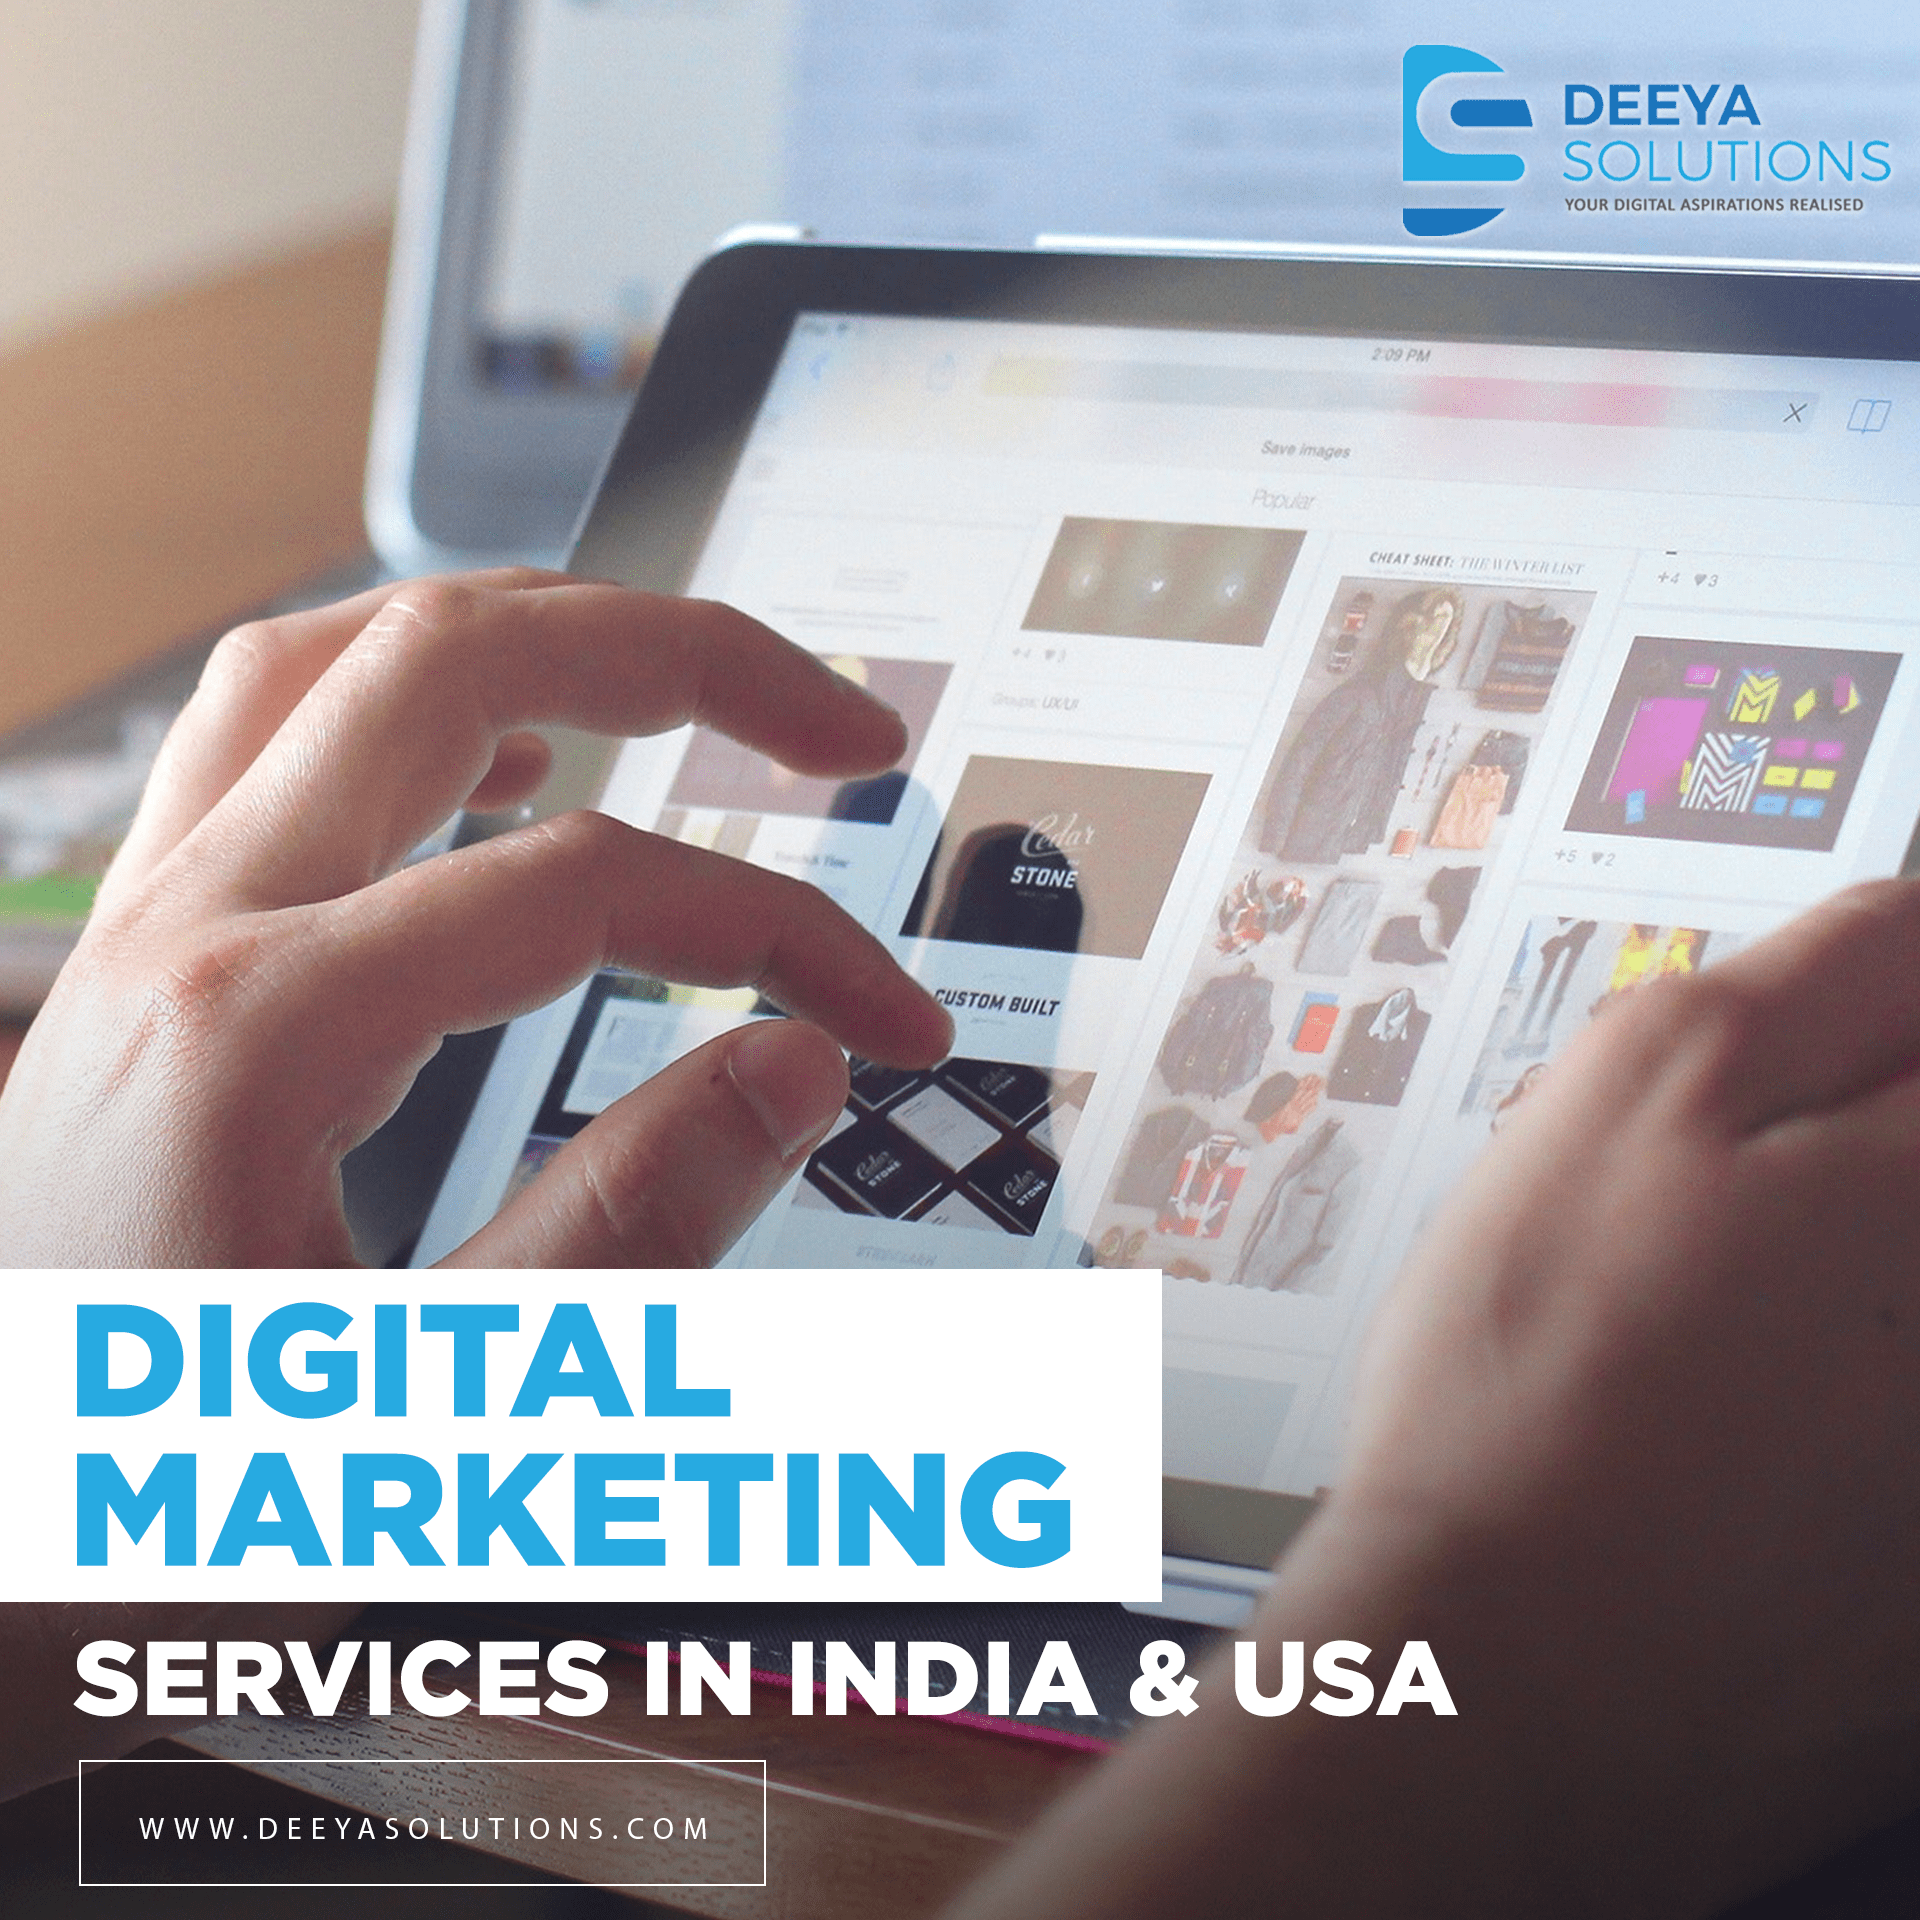 Digital Marketing Services in India & USA